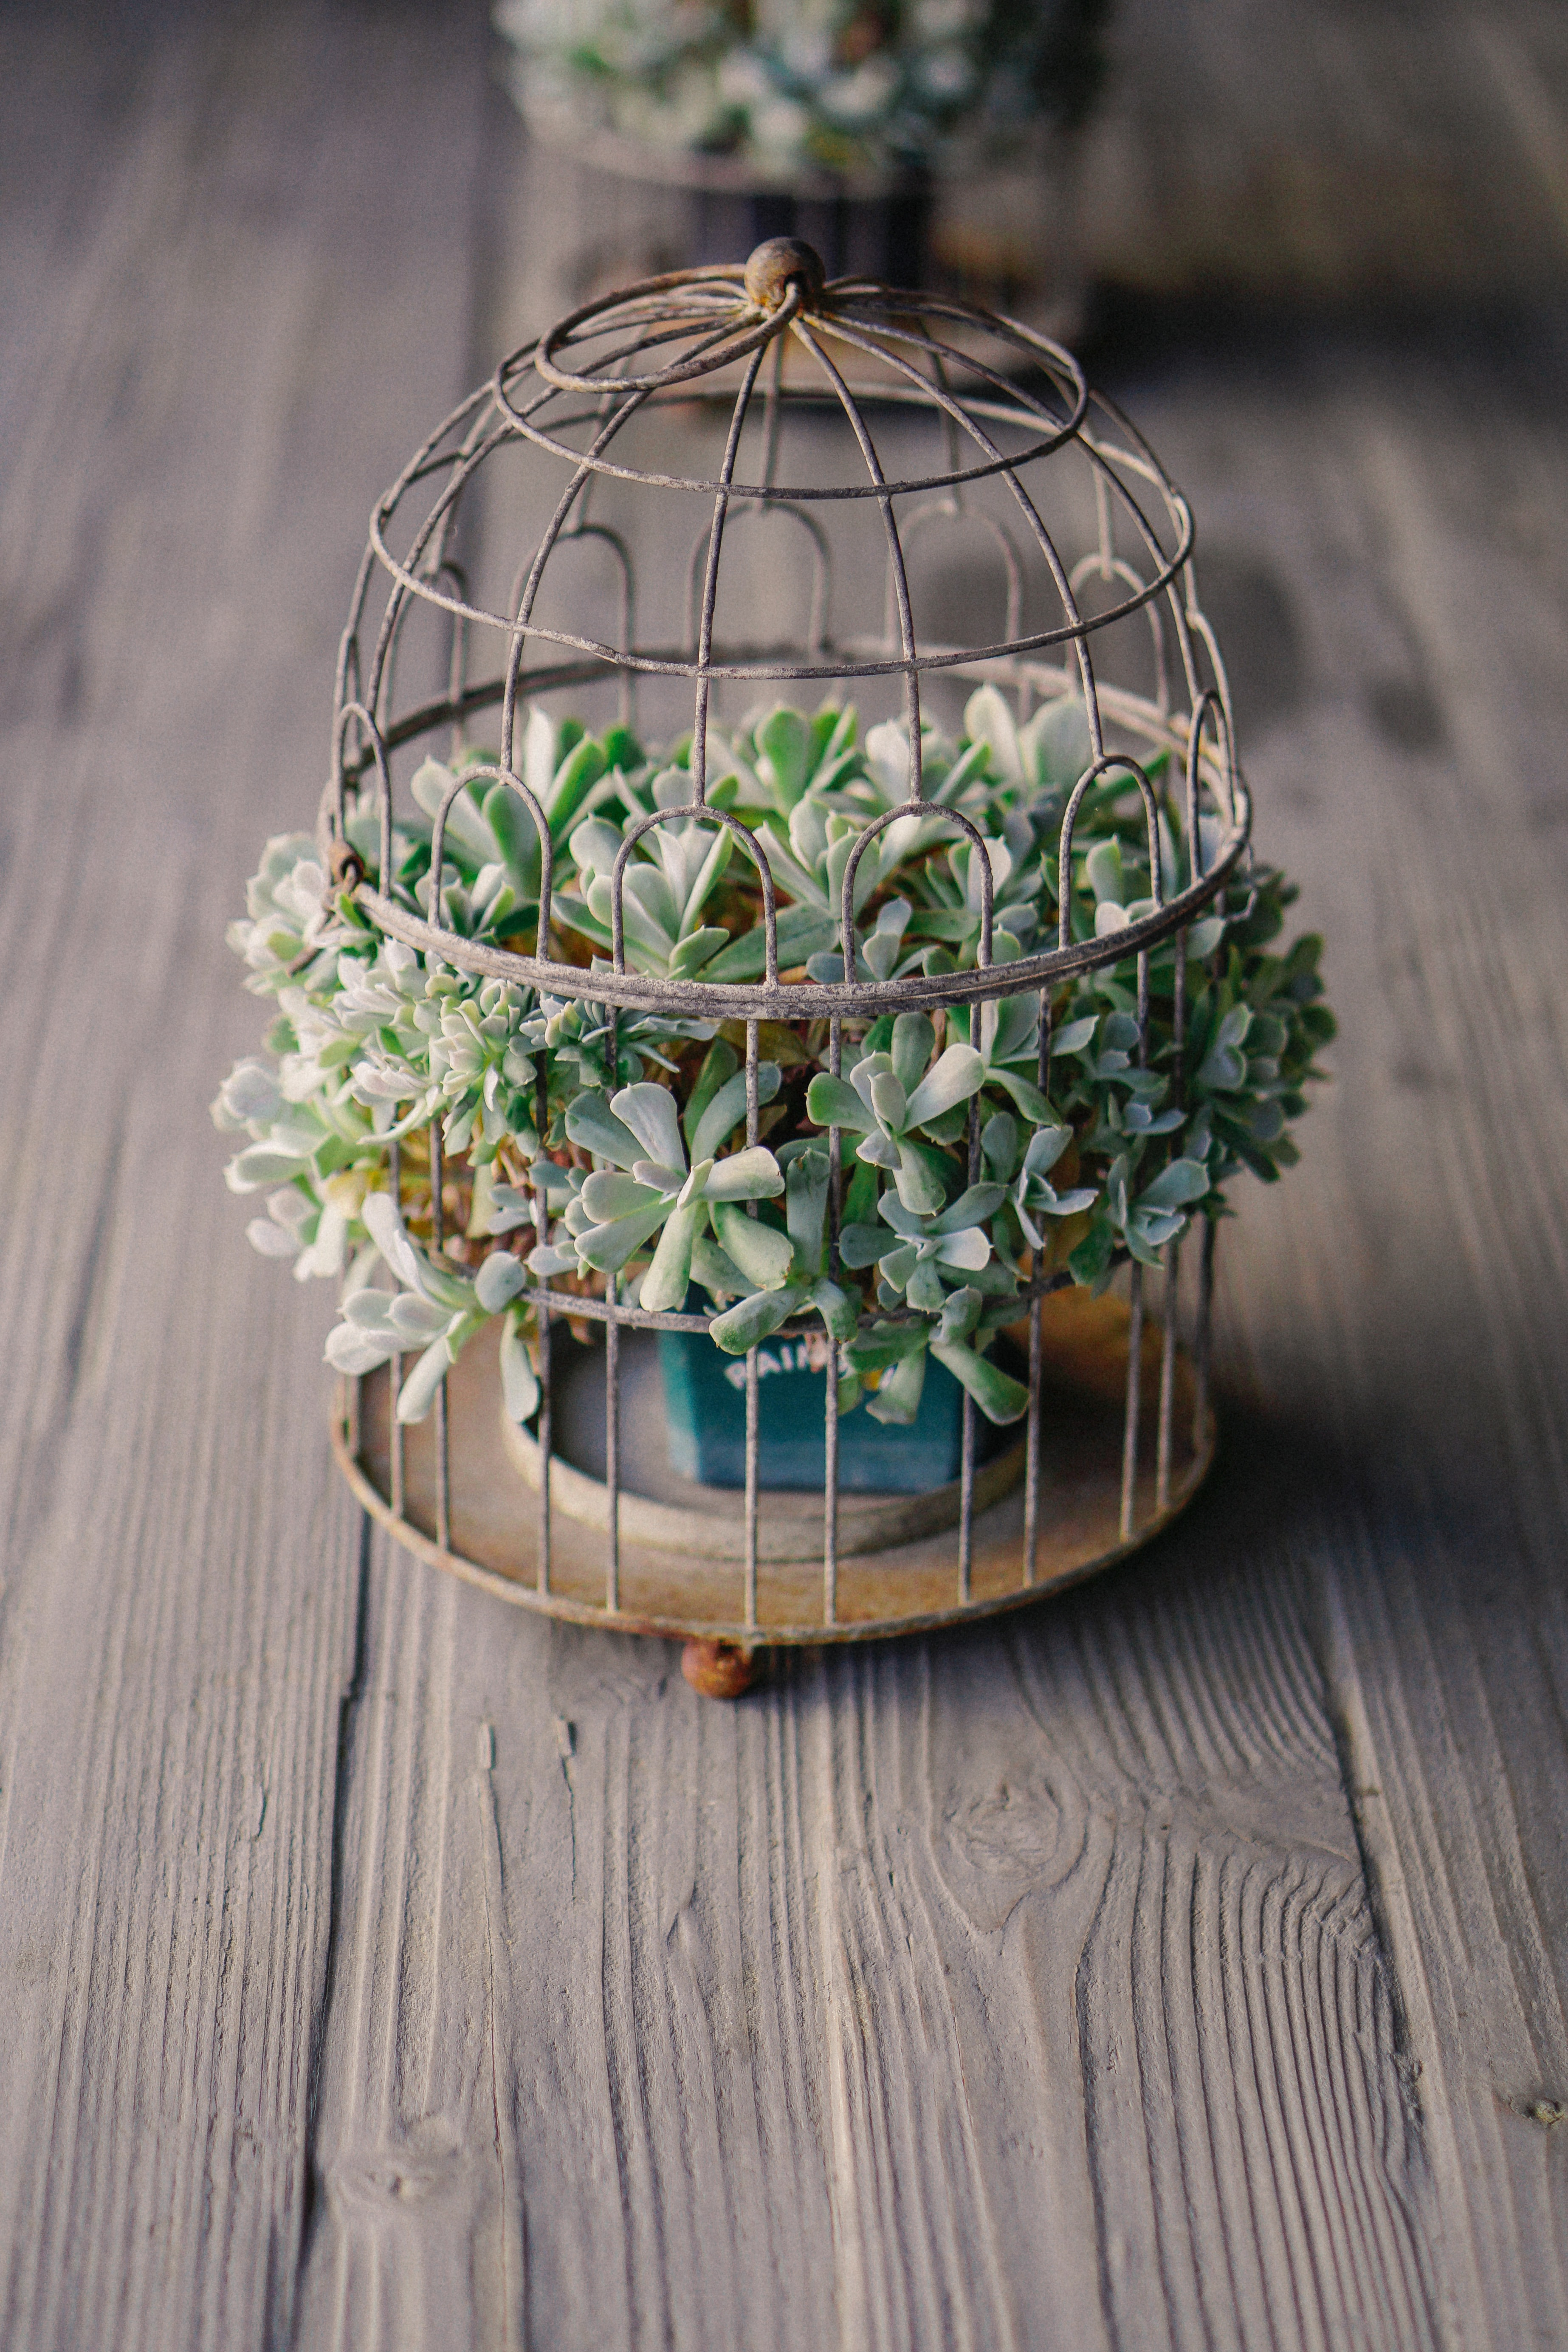 green succulent plant in cage